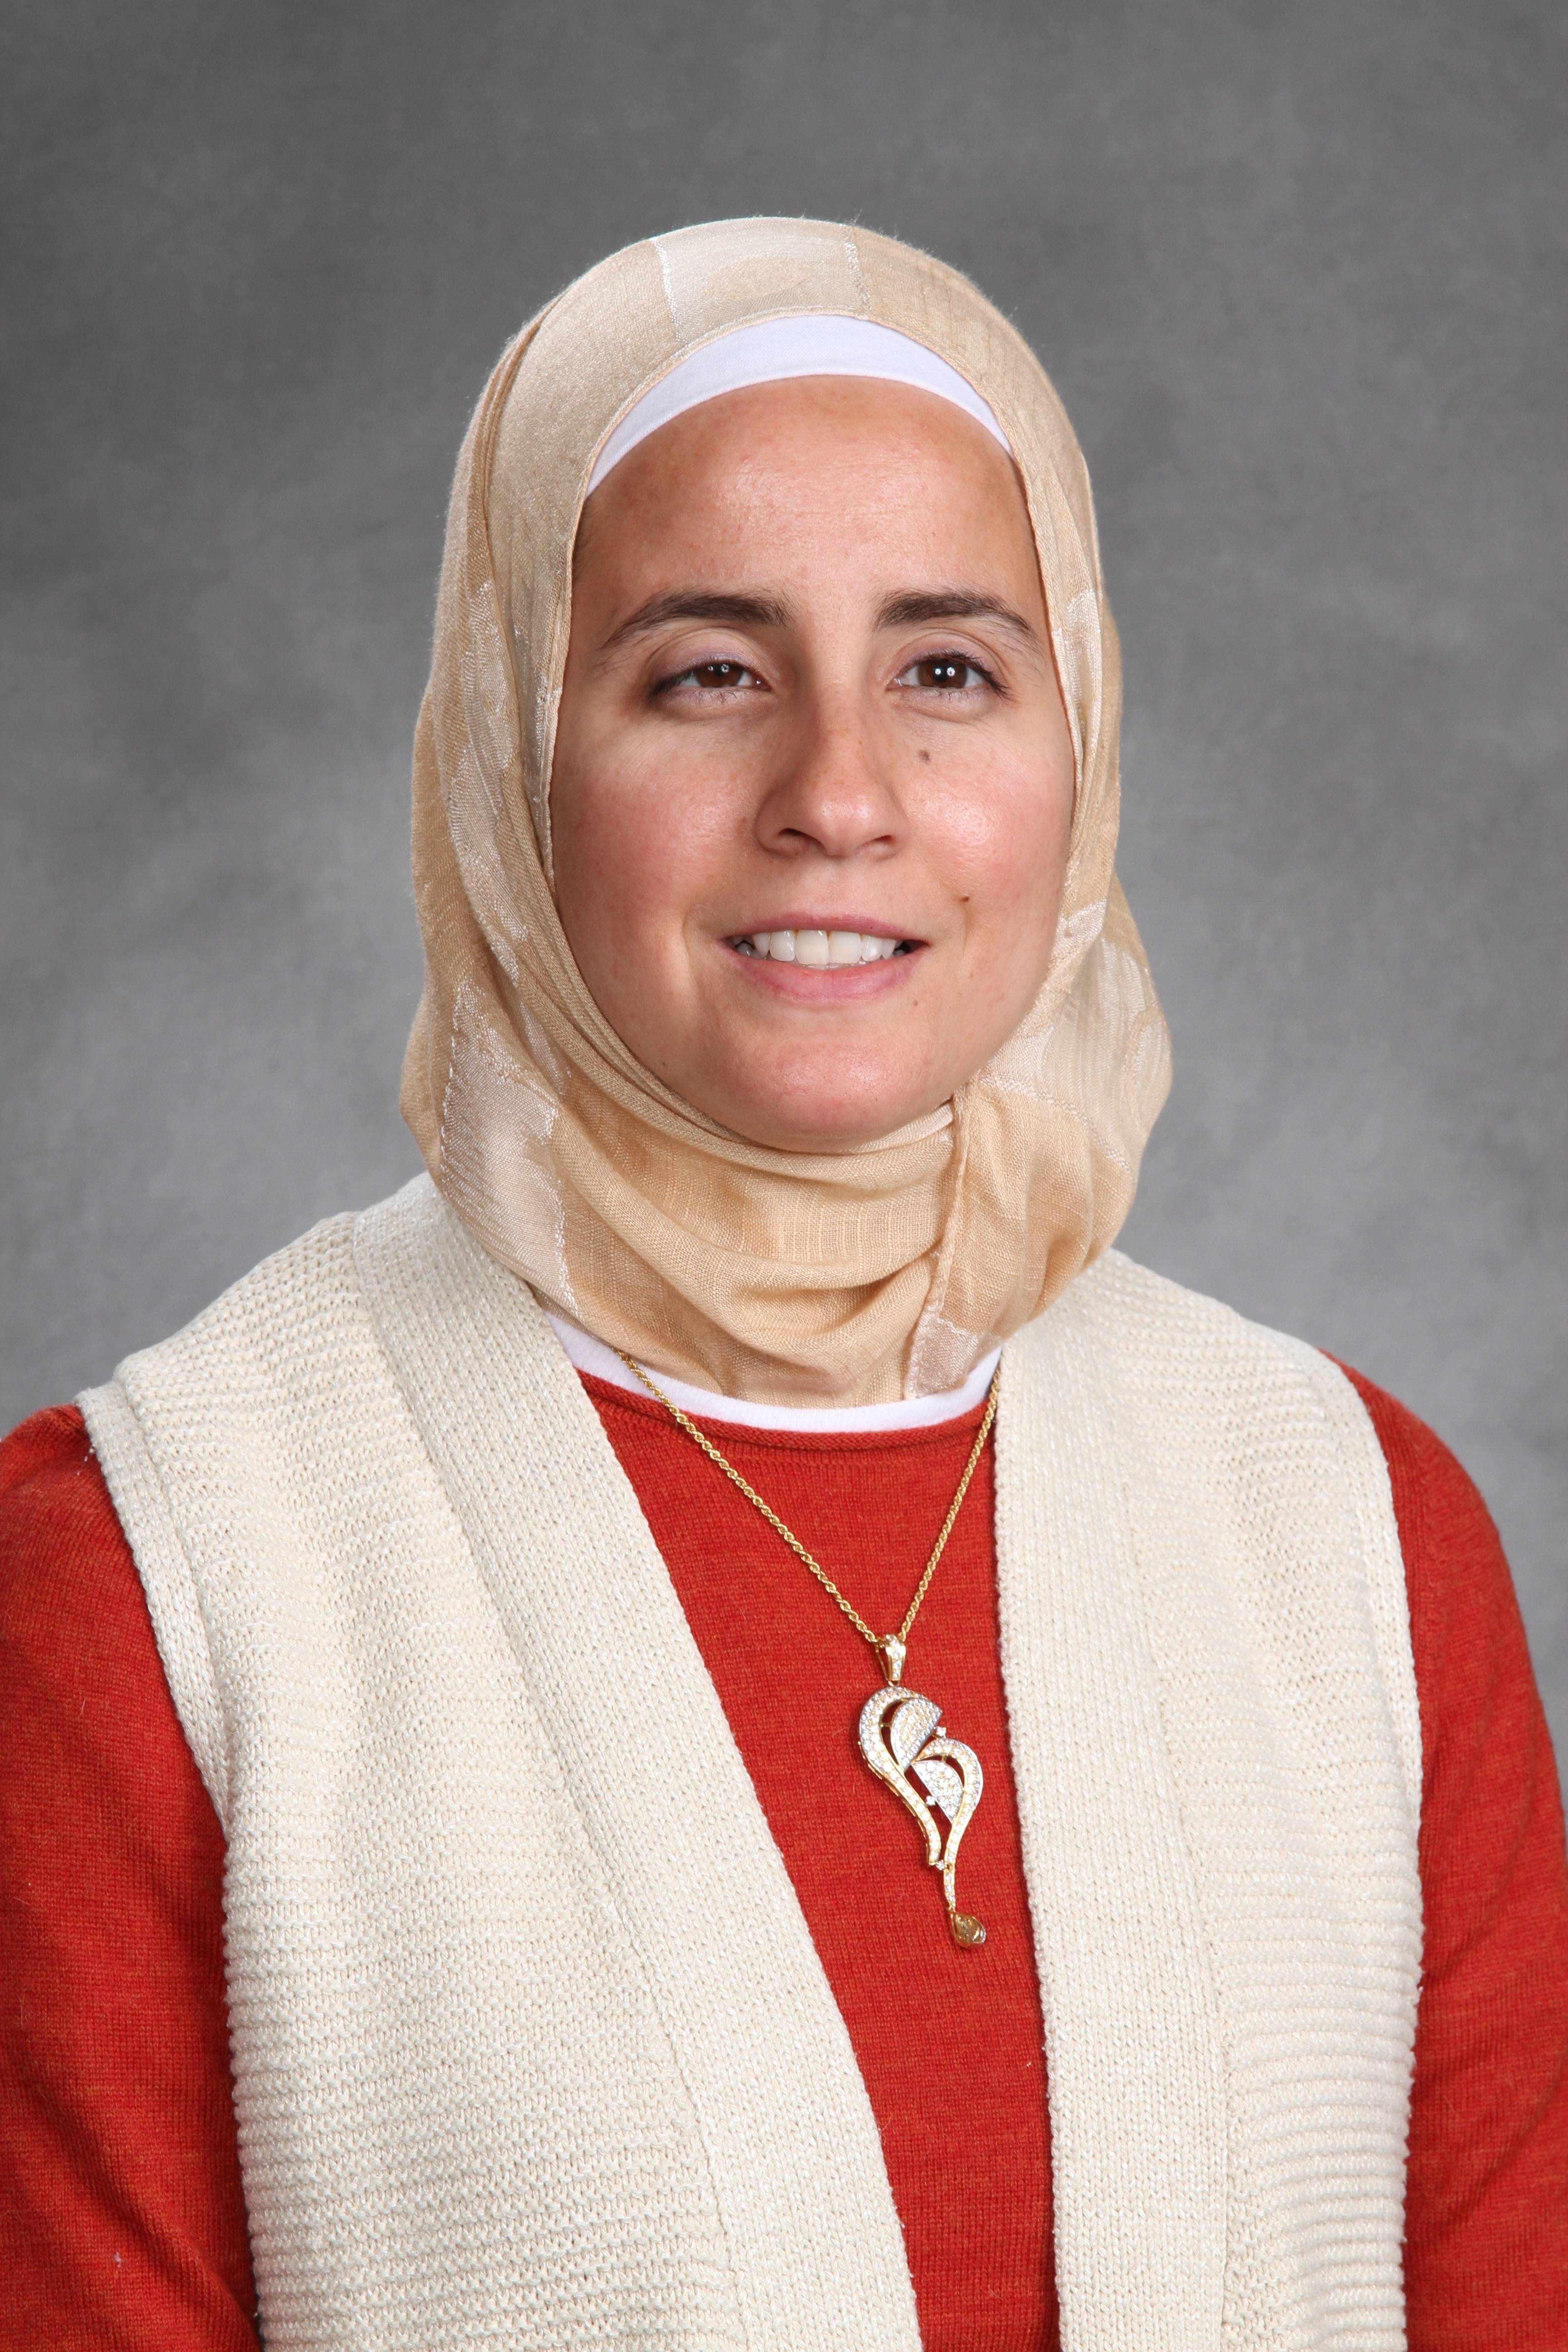 Dr. Nour Akhras, a pediatric hospitalist and infectious disease specialist who will play a pivotal role in providing care for